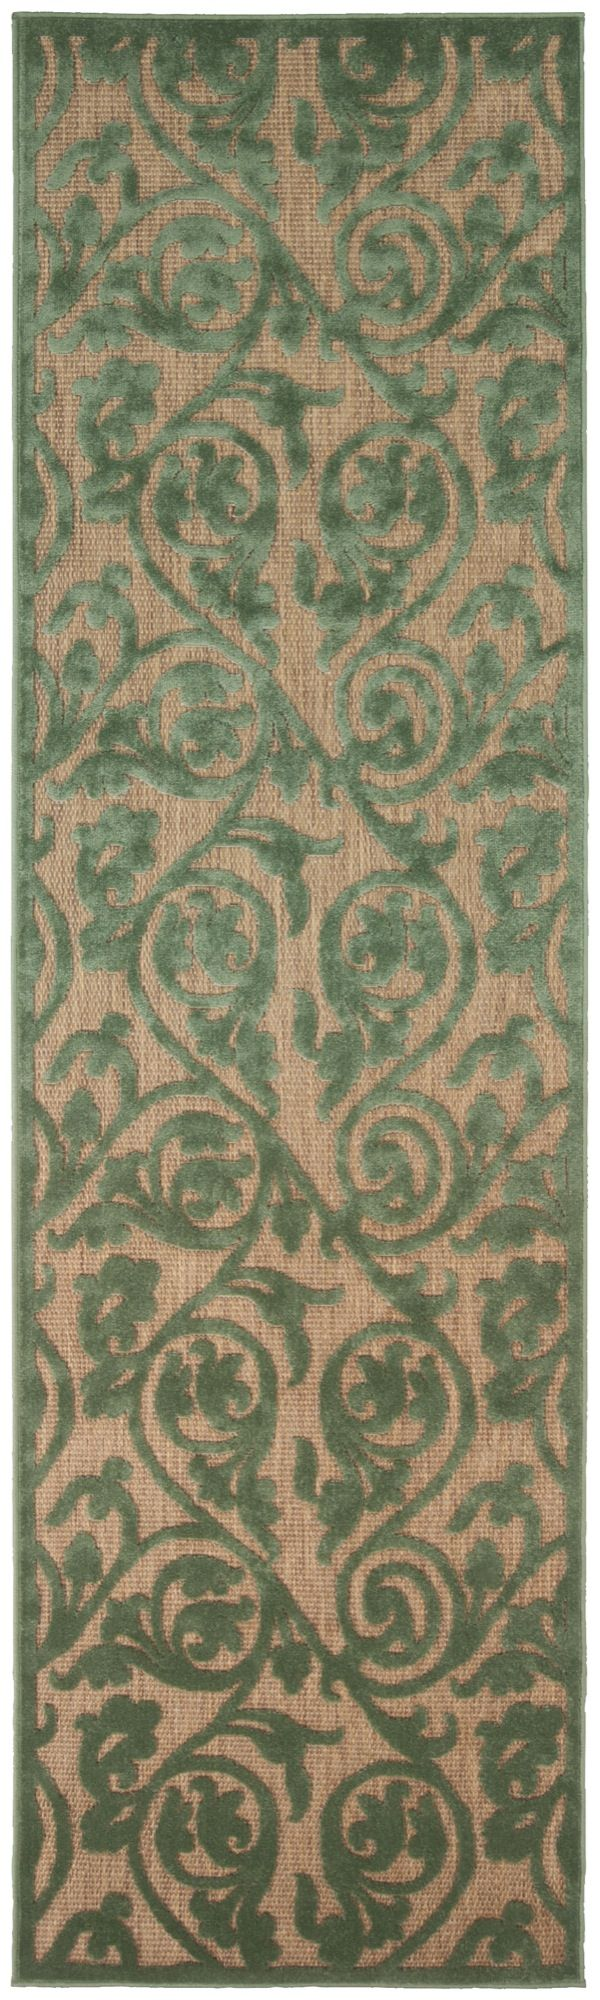 surya portera indoor/outdoor area rug collection